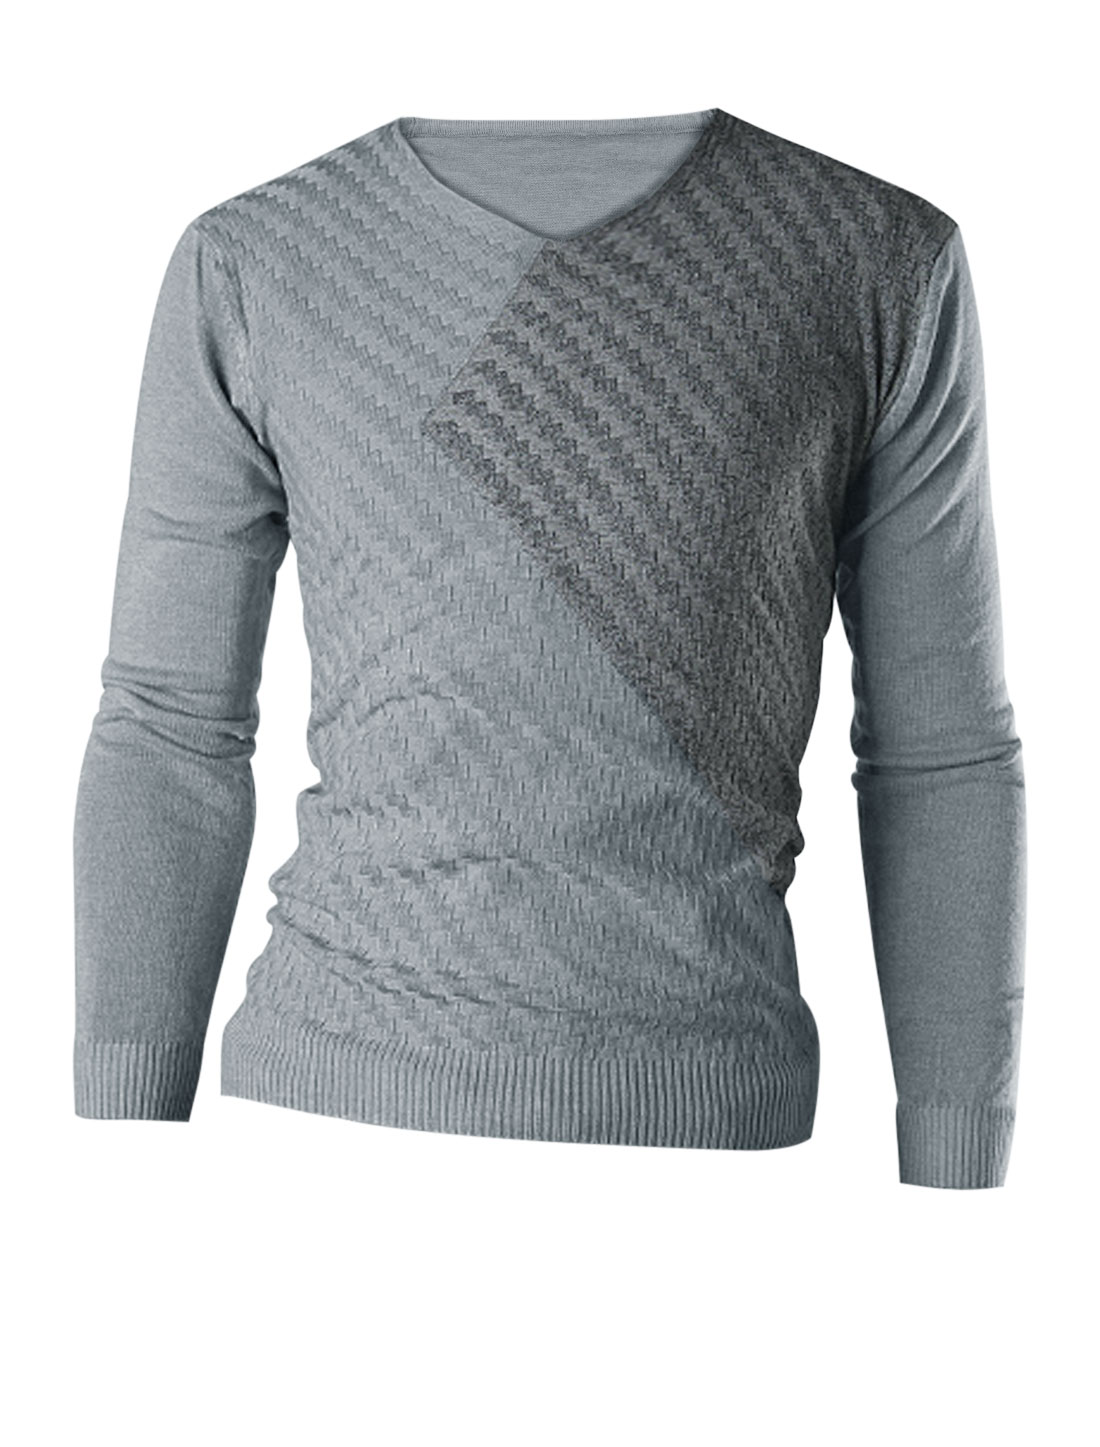 Men Slipover Color Block Stylish Casual Knit Shirt Light Gray